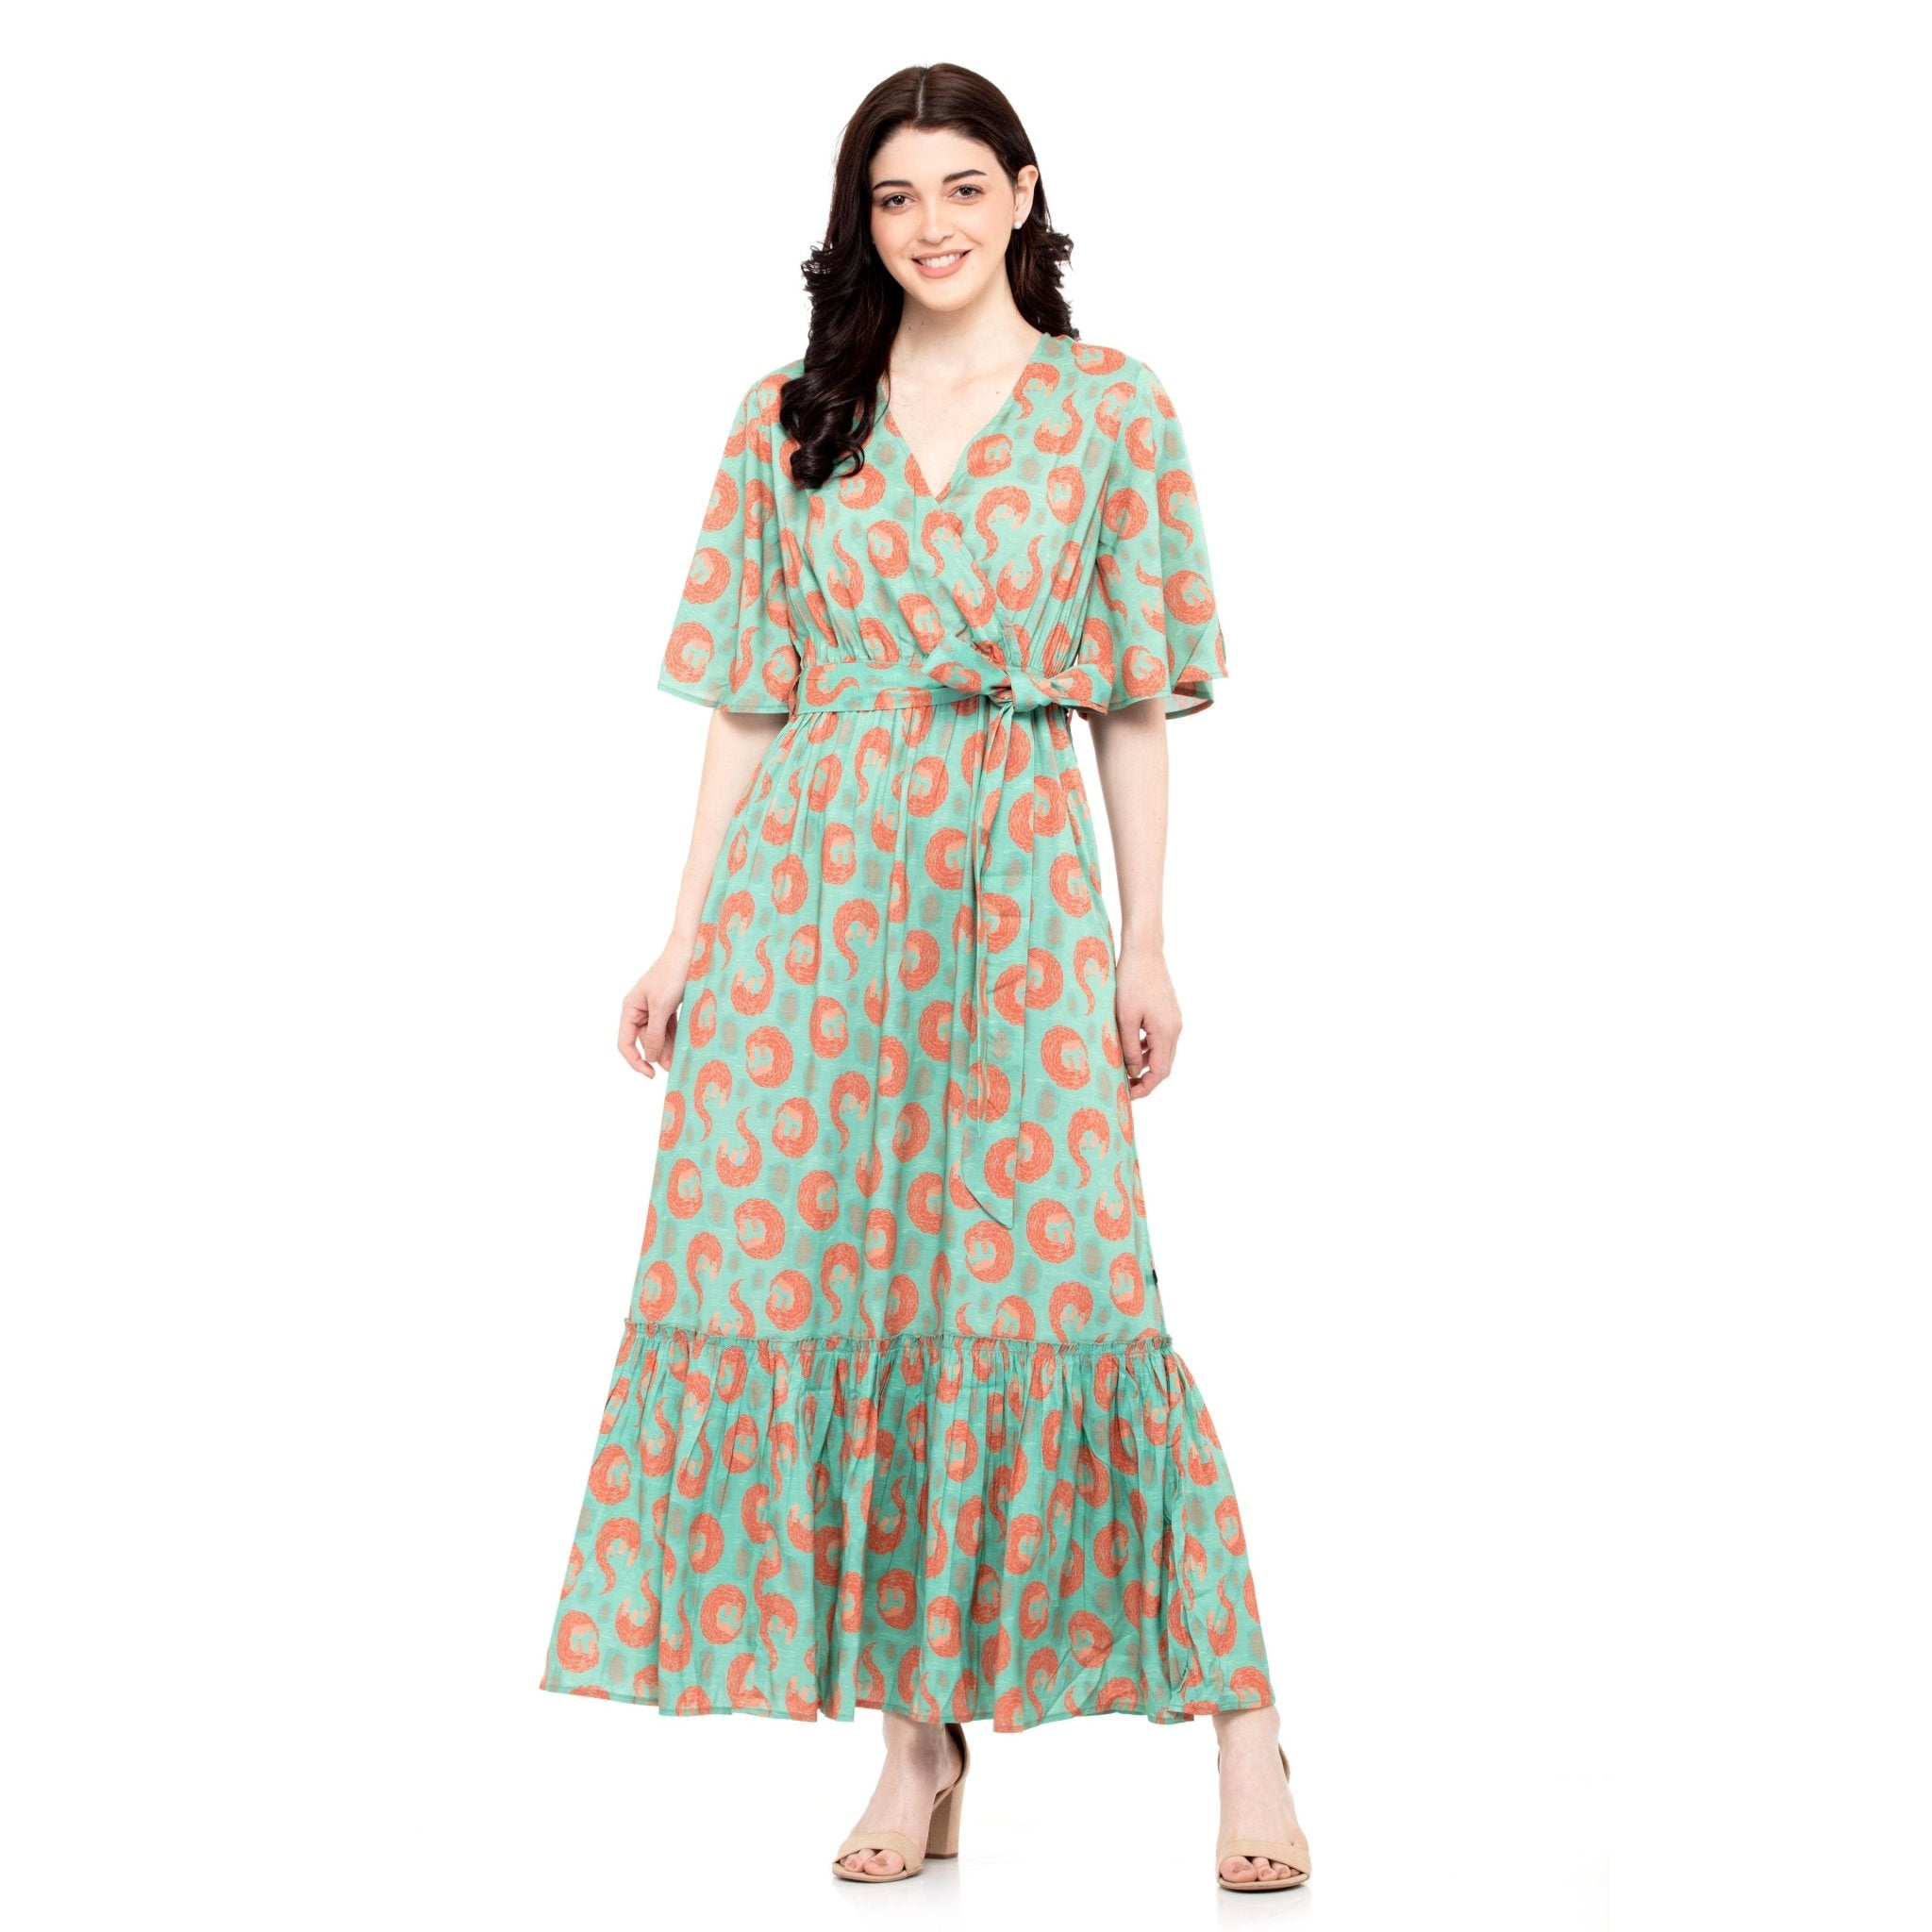 SEA GREEN MAXI DRESS - ZOMO